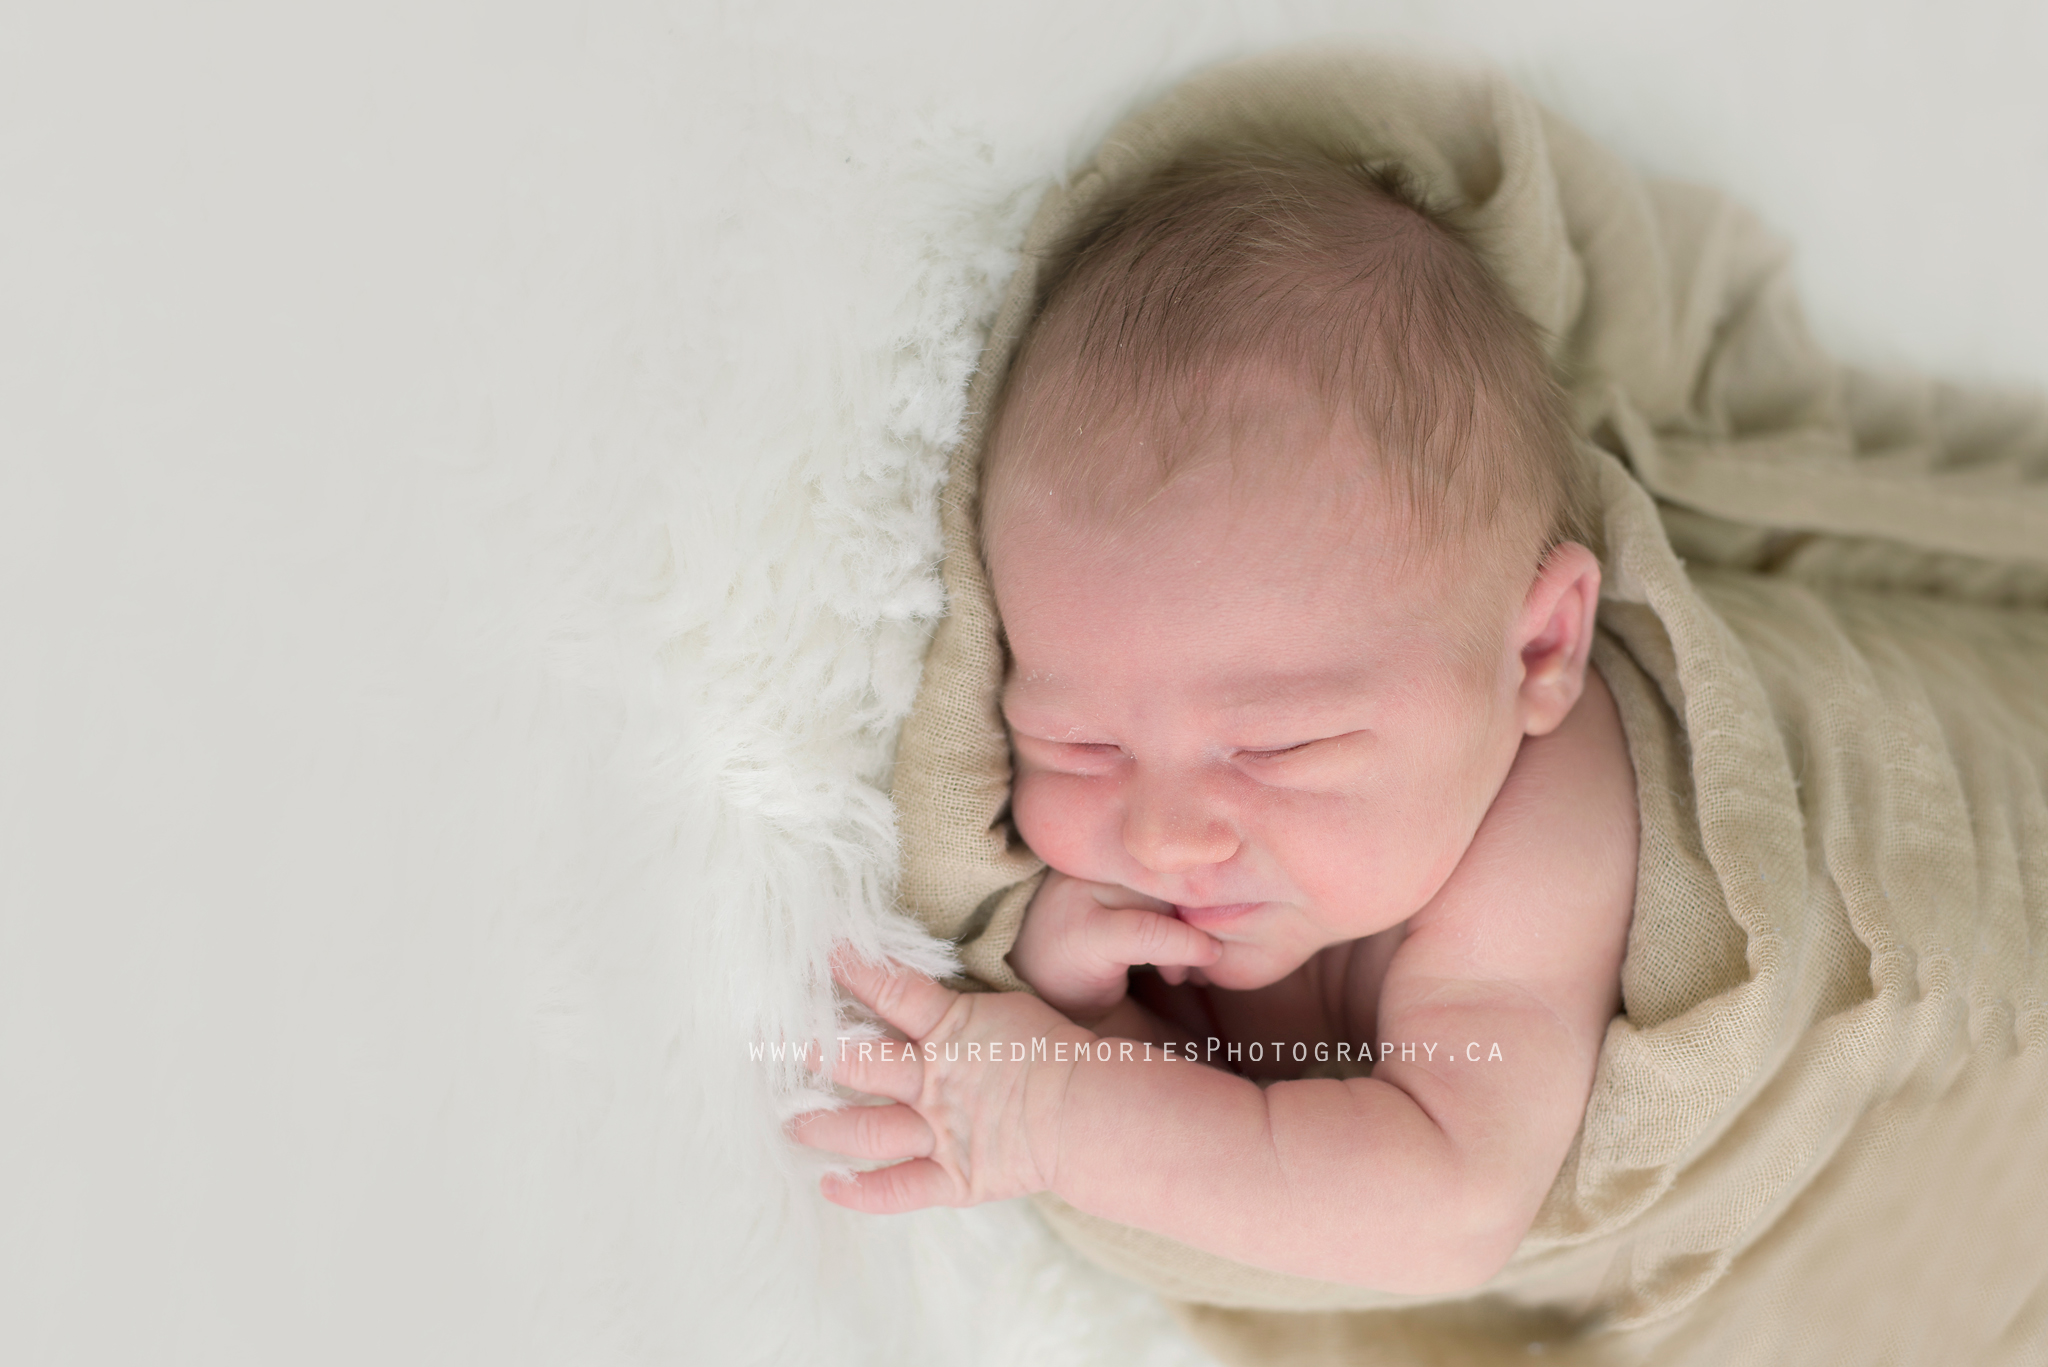 Baby jagger hamilton newborn studio session